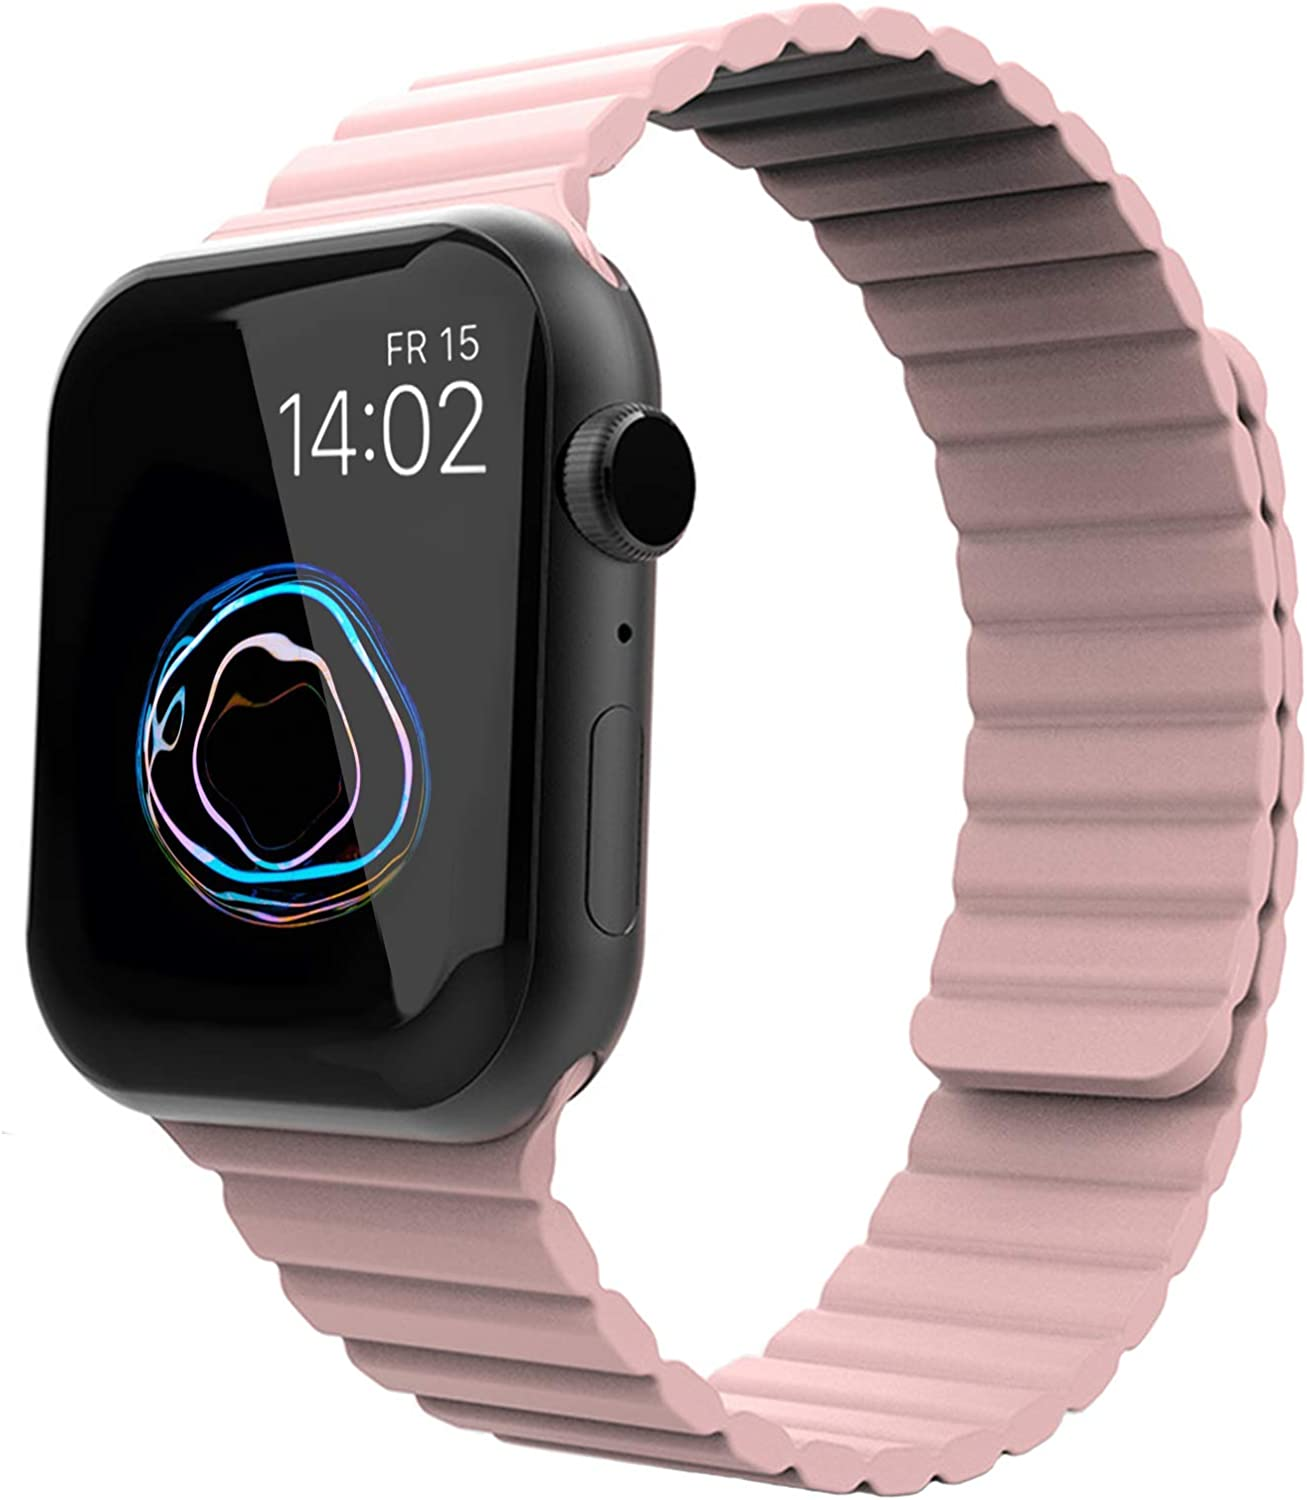 ALADRS Silicone Magnetic Closure Sport Loop Straps Compatible with Apple Watch Band, Adjustable Wristbands for iWatch Series 6 5 4, SE (44mm 40mm) Series 3 2 1 (42mm 38mm)